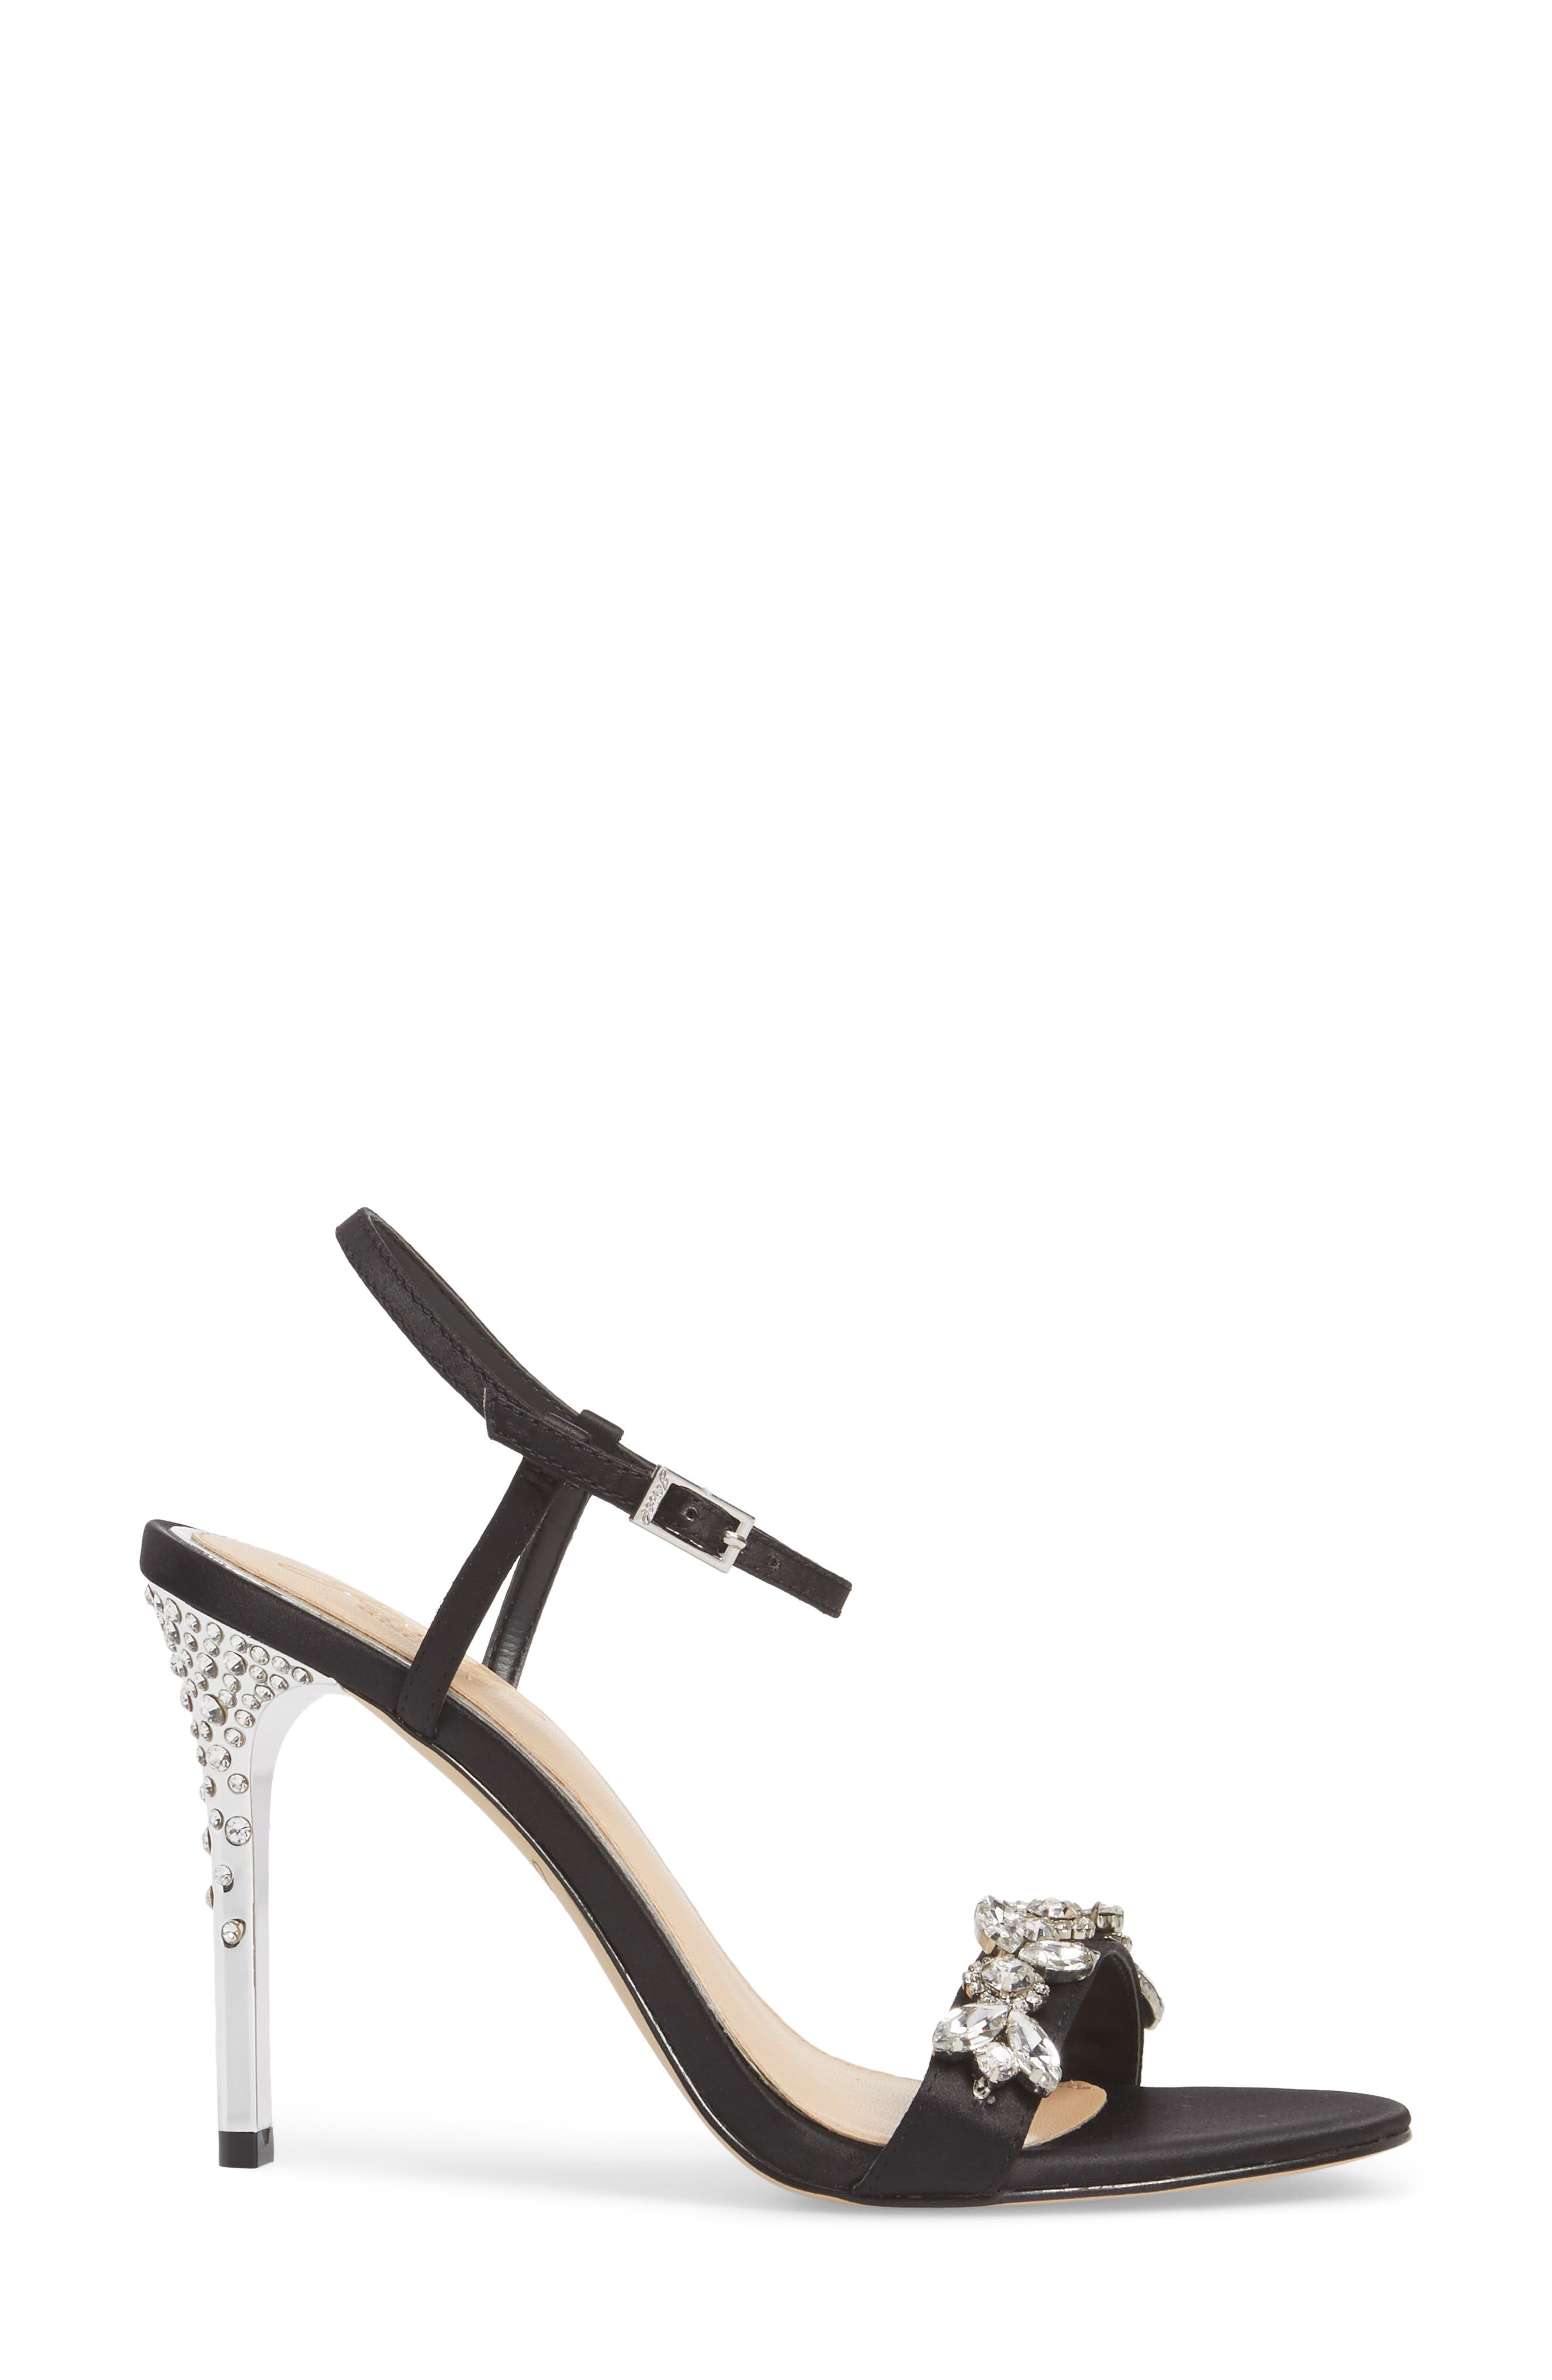 Tex Ankle Strap Sandal,                             Alternate thumbnail 3, color,                             Black Satin